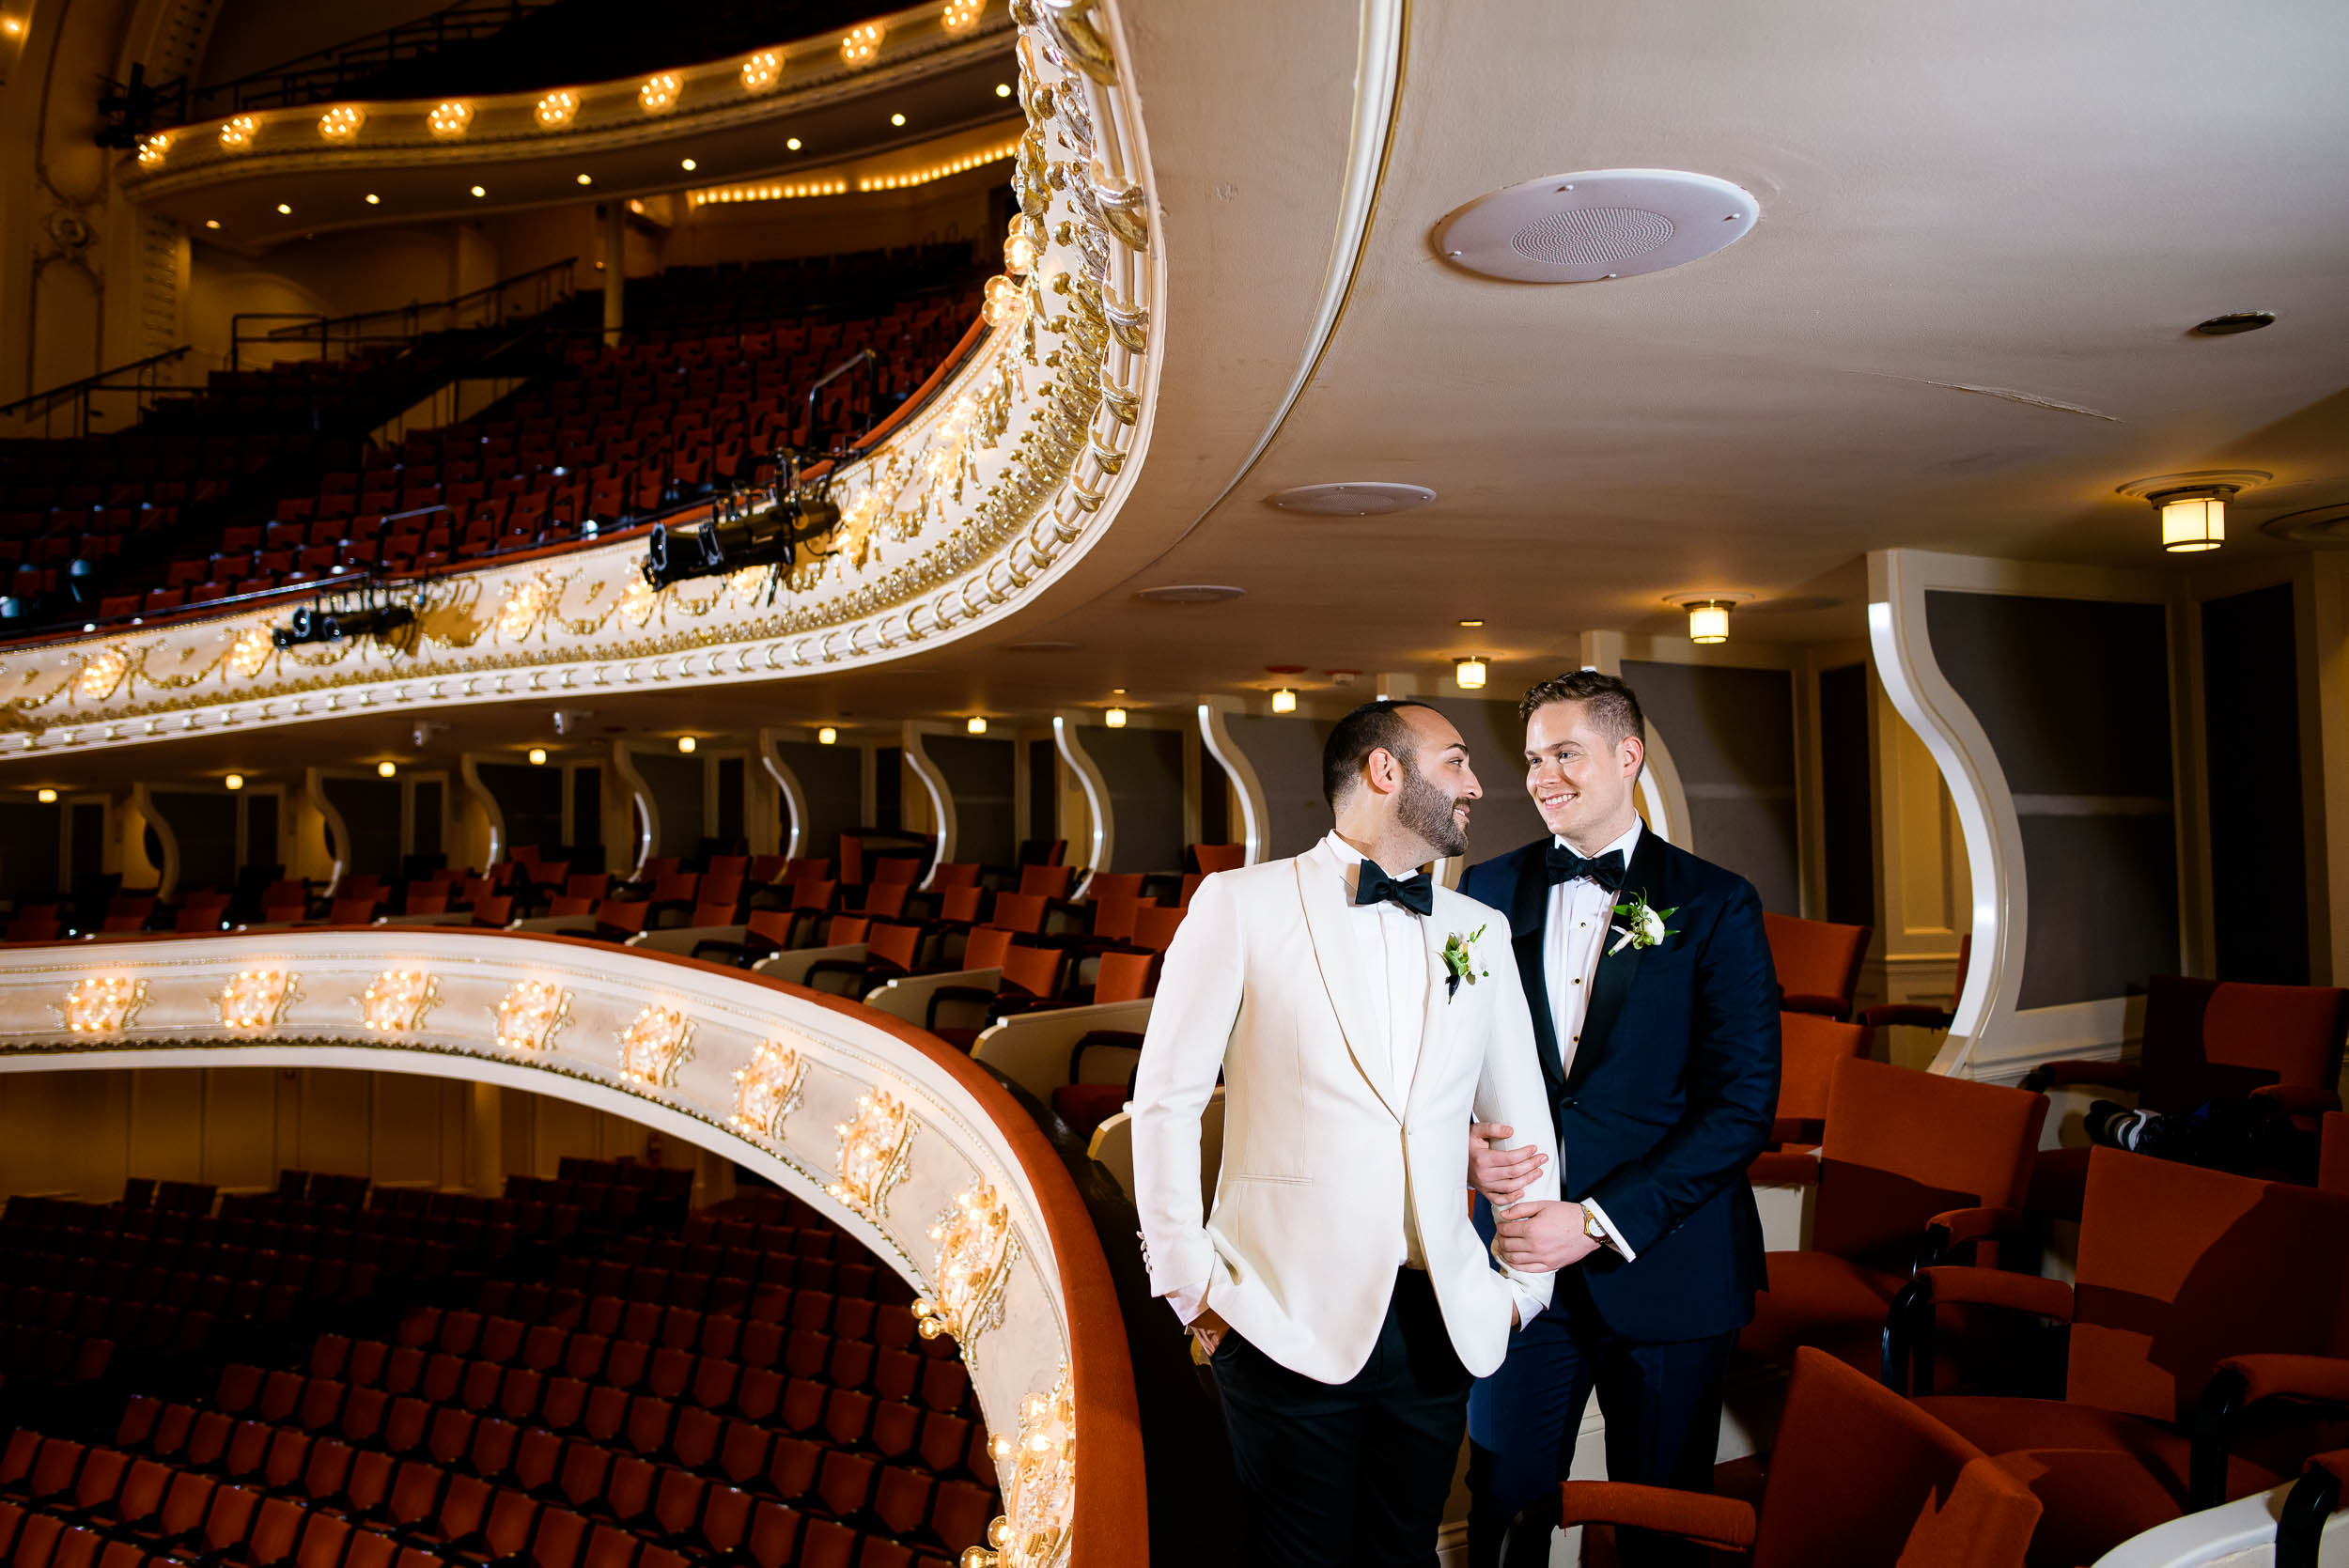 Grooms posing inside wedding venue for luxurious fall wedding at the Chicago Symphony Center captured by J. Brown Photography. See more wedding ideas at jbrownphotography.com!